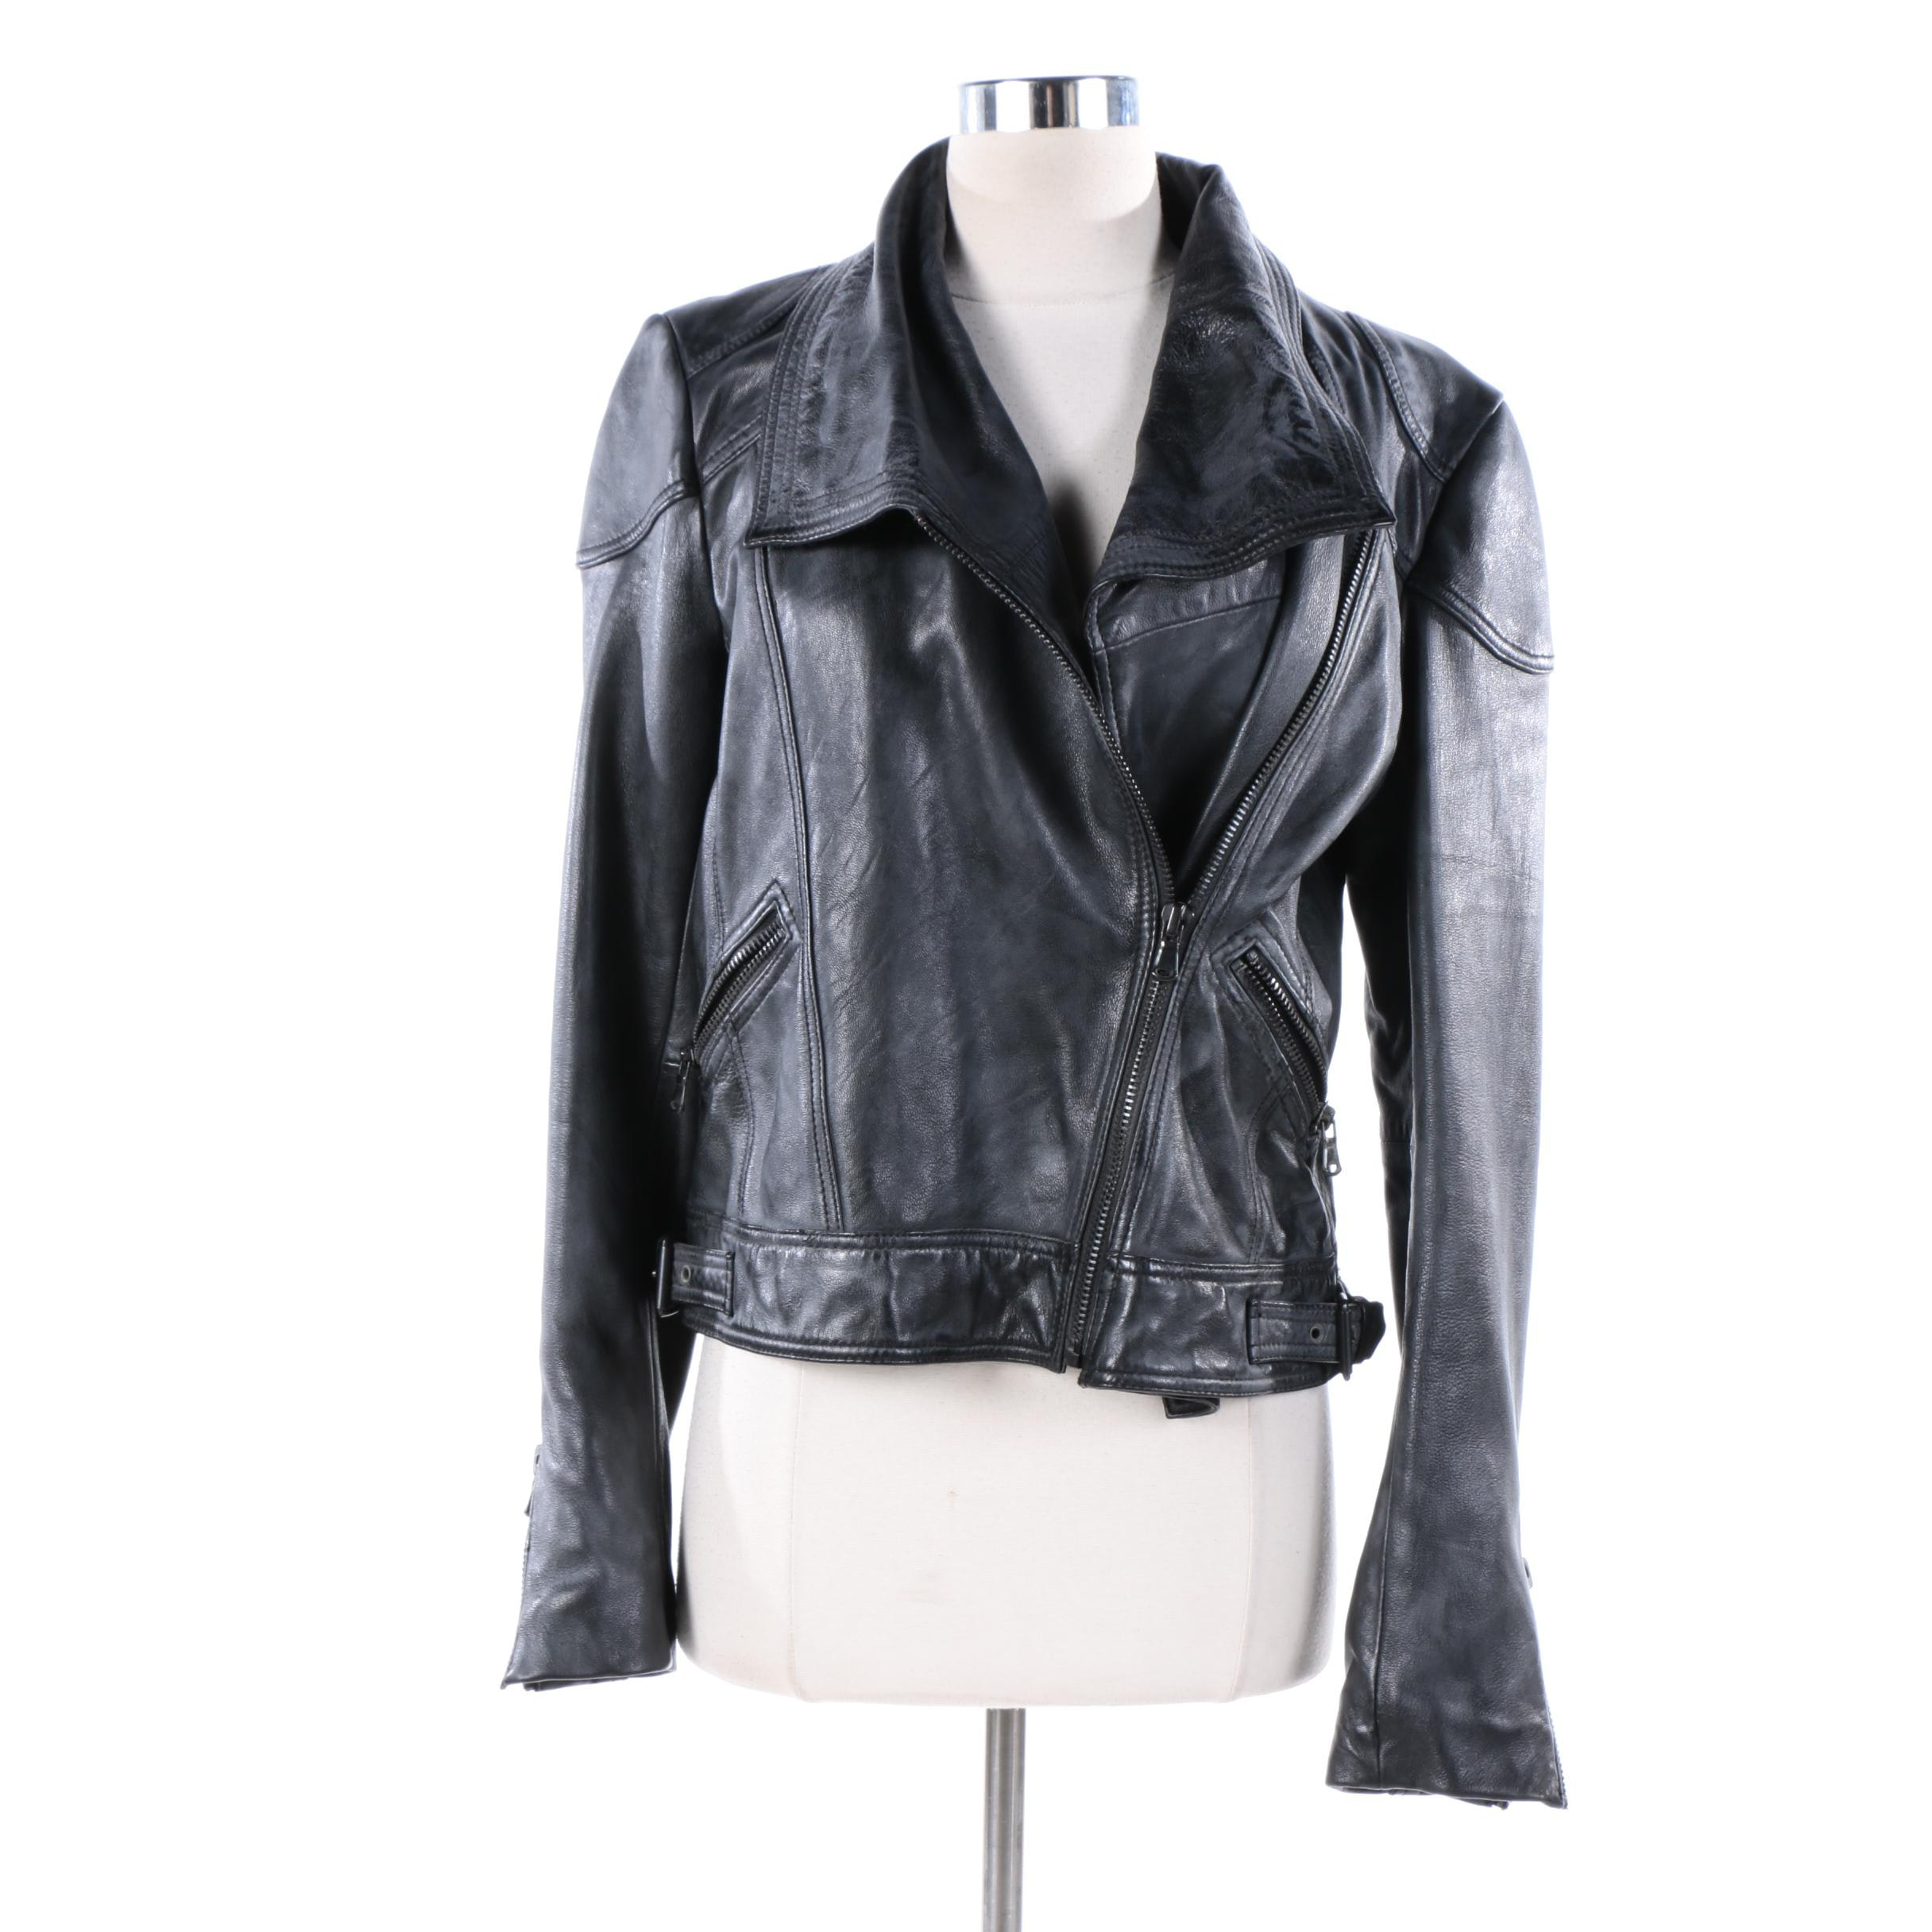 Women's Black Rivet Leather Motorcycle Jacket